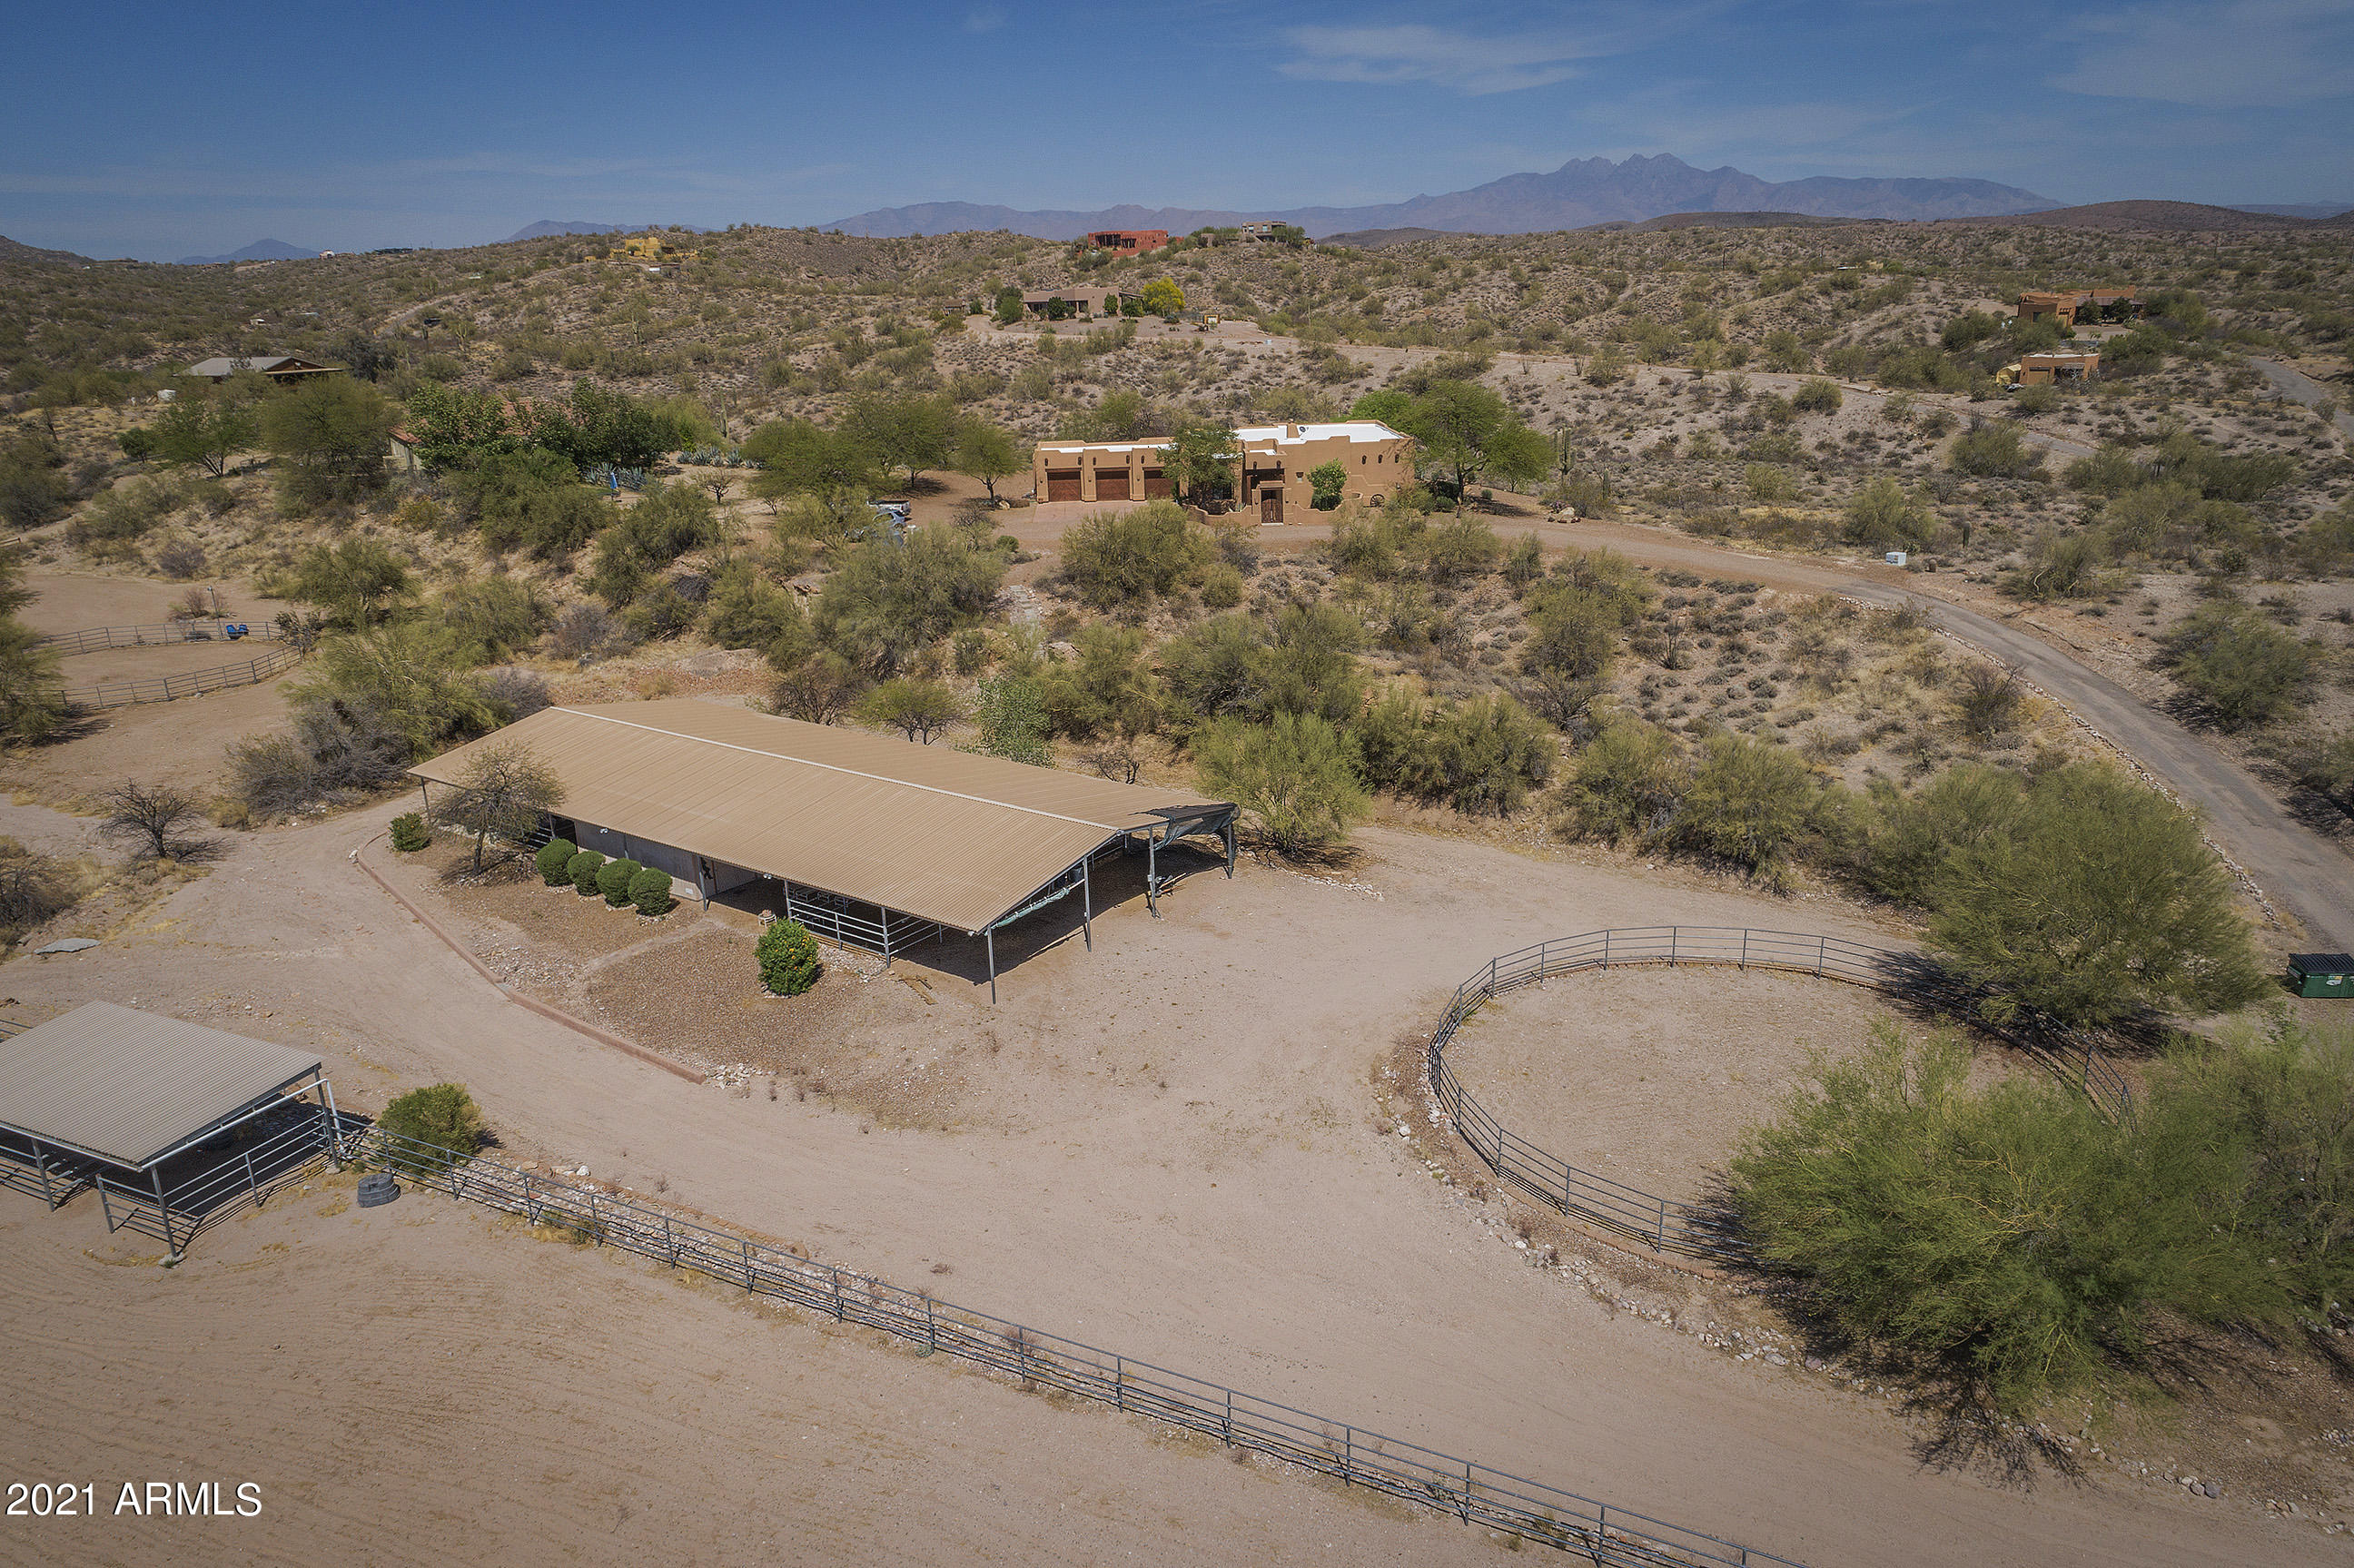 5+ Acres!!! Bring your Horses, Toys and RV's. Beautiful Territorial Style home nested into the foothills of Goldfield Ranch. Some of the best views in the Valley. Gorgeous Open floor Plan with floor to ceiling glass showcasing the amazing mountain views. Custom Chocolate Saltillo flooring, Custom Wood touches throughout the home, Oversized, Insulated 3 Car Garage, Best horse set up around , 4860 aprox sq ft Barn with stalls, Automatic Waters, Lighting, Tack Room or storage Room, 2 Wash racks, Grooming stations and more. Endless possibilities!!! Turn out area with 2 separate shades, tie post, Arena 280X180 and Fabulous 60' Foot Round Pen. Just minutes from Fountain Hills Bring your Toys, RV's plenty of room on this gorgeous horse property. Private Well!!!!